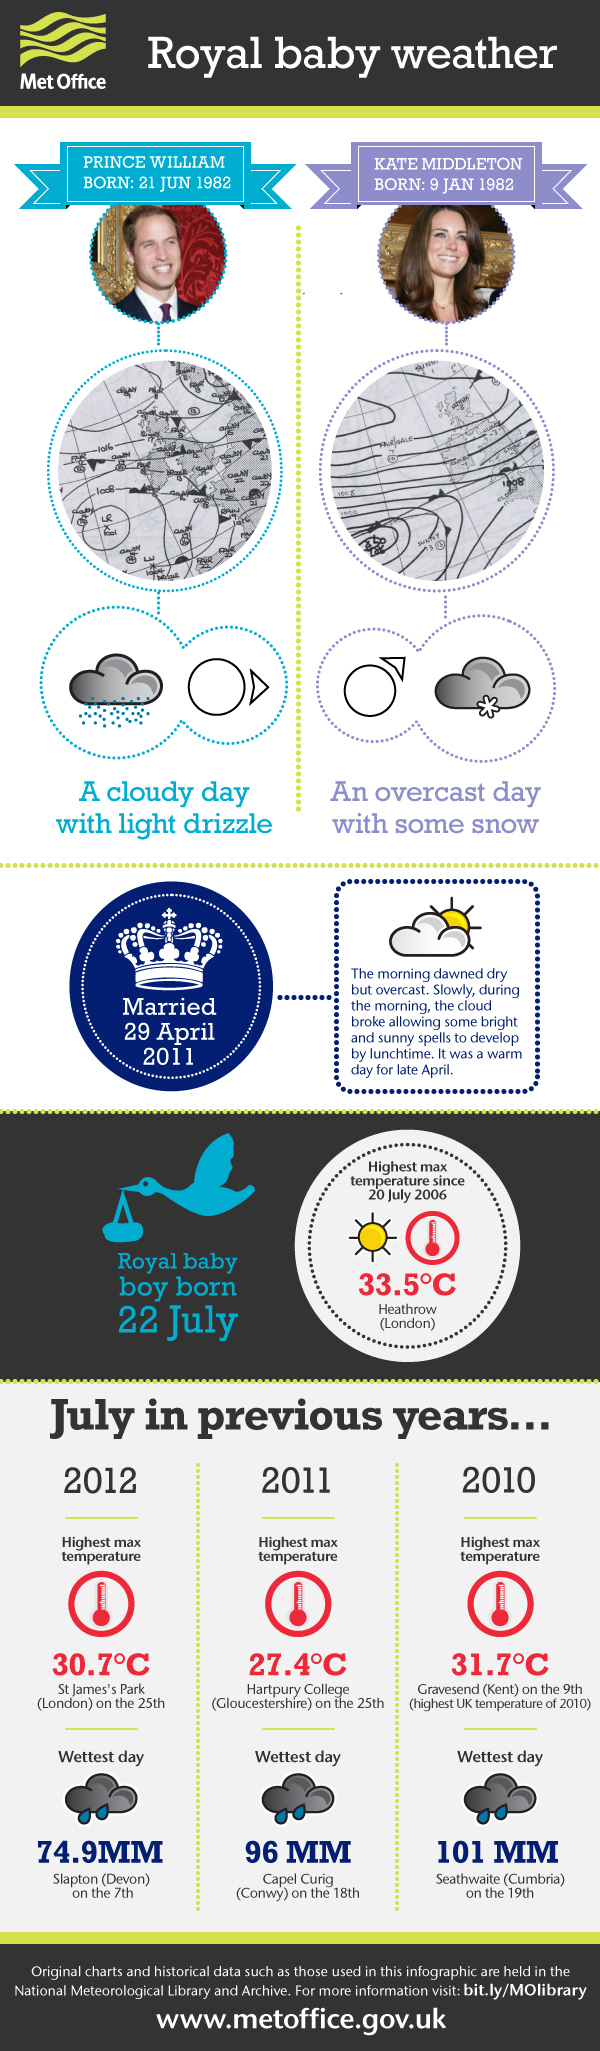 royalbabyinfographic_2